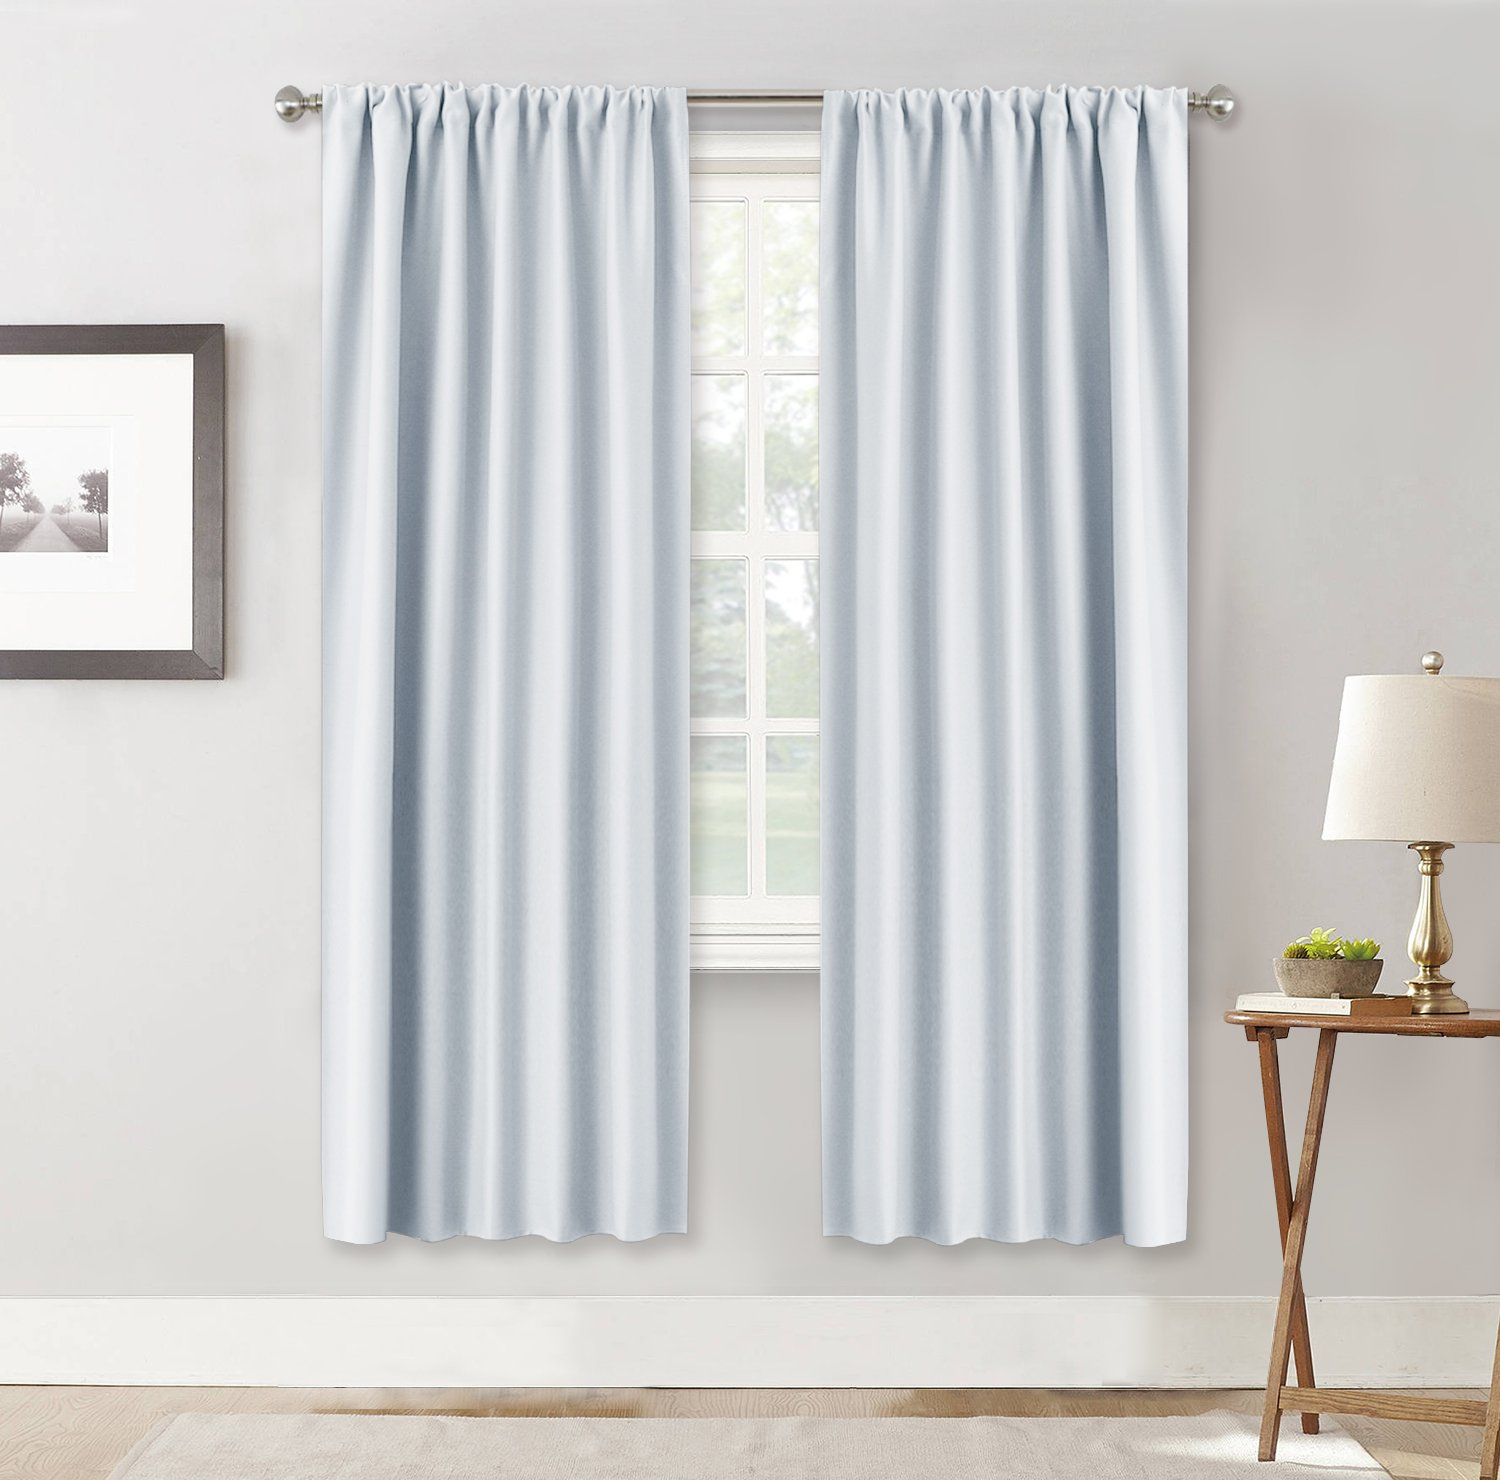 RYB HOME Room Darkening Thermal Blackout Curtains Decoration (Wide 42 by Long 72, Greyish White, 1 Pair) Window Draperies Sunlight Shades Panels Rod Pocket for Kid's Room Dining Room